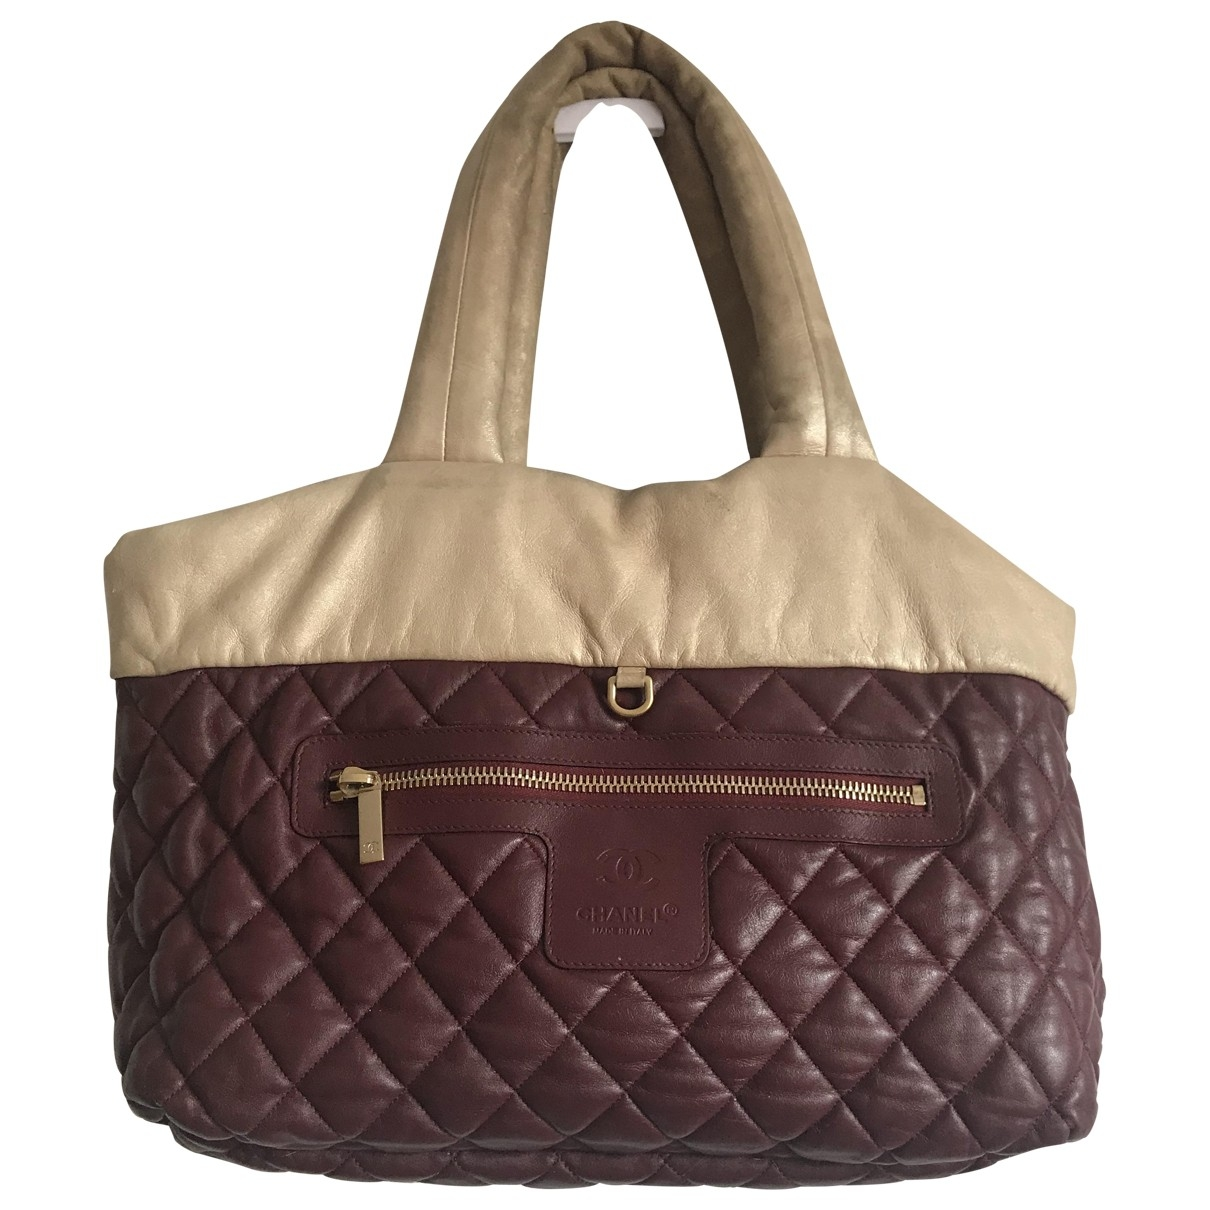 Chanel Coco Cocoon Burgundy Leather Travel bag for Women \N